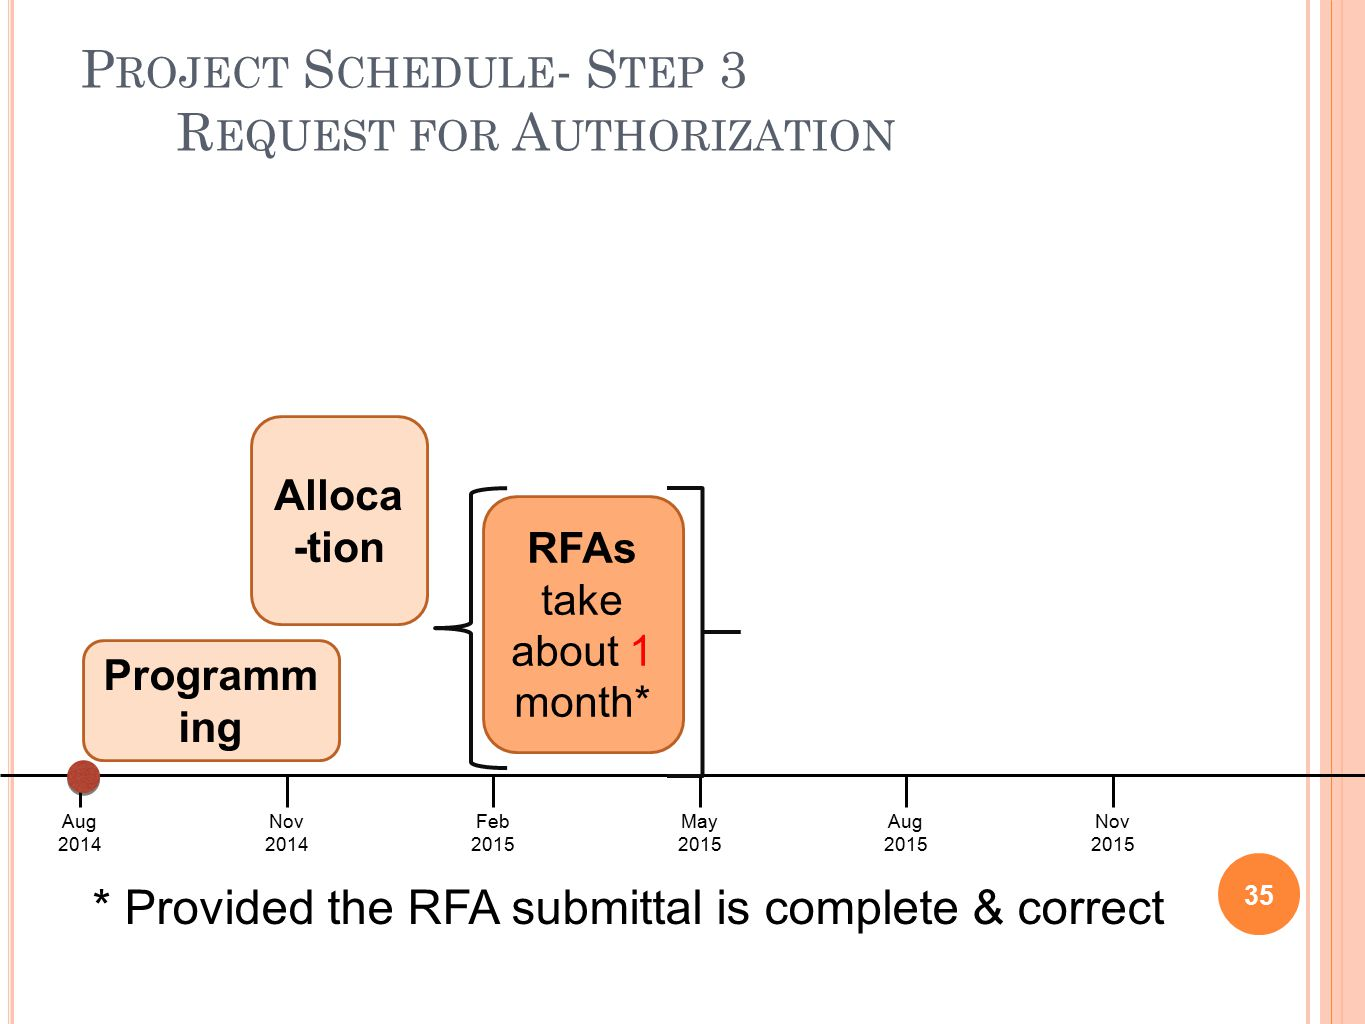 Aug 2014 Nov 2015 Nov 2014 Feb 2015 May 2015 Aug 2015 P ROJECT S CHEDULE - S TEP 3 R EQUEST FOR A UTHORIZATION 35 Programm ing Alloca -tion RFAs take about 1 month* * Provided the RFA submittal is complete & correct